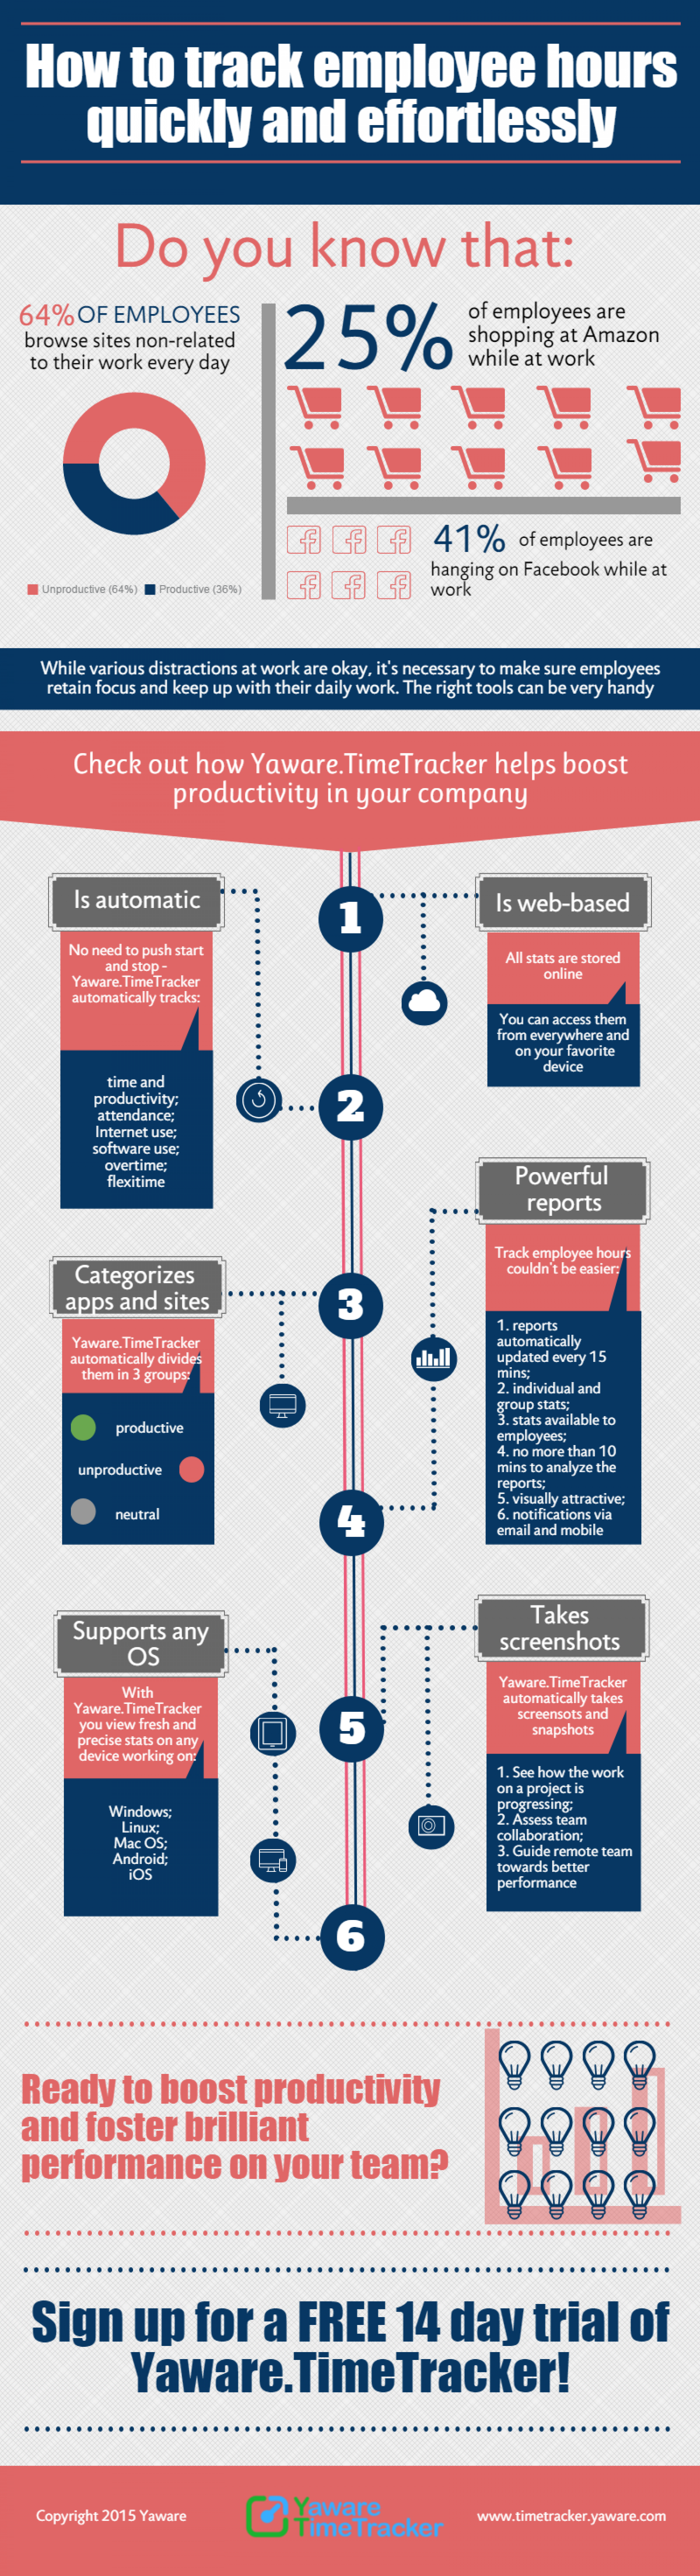 How to track employee hours quickly and effortlessly Infographic